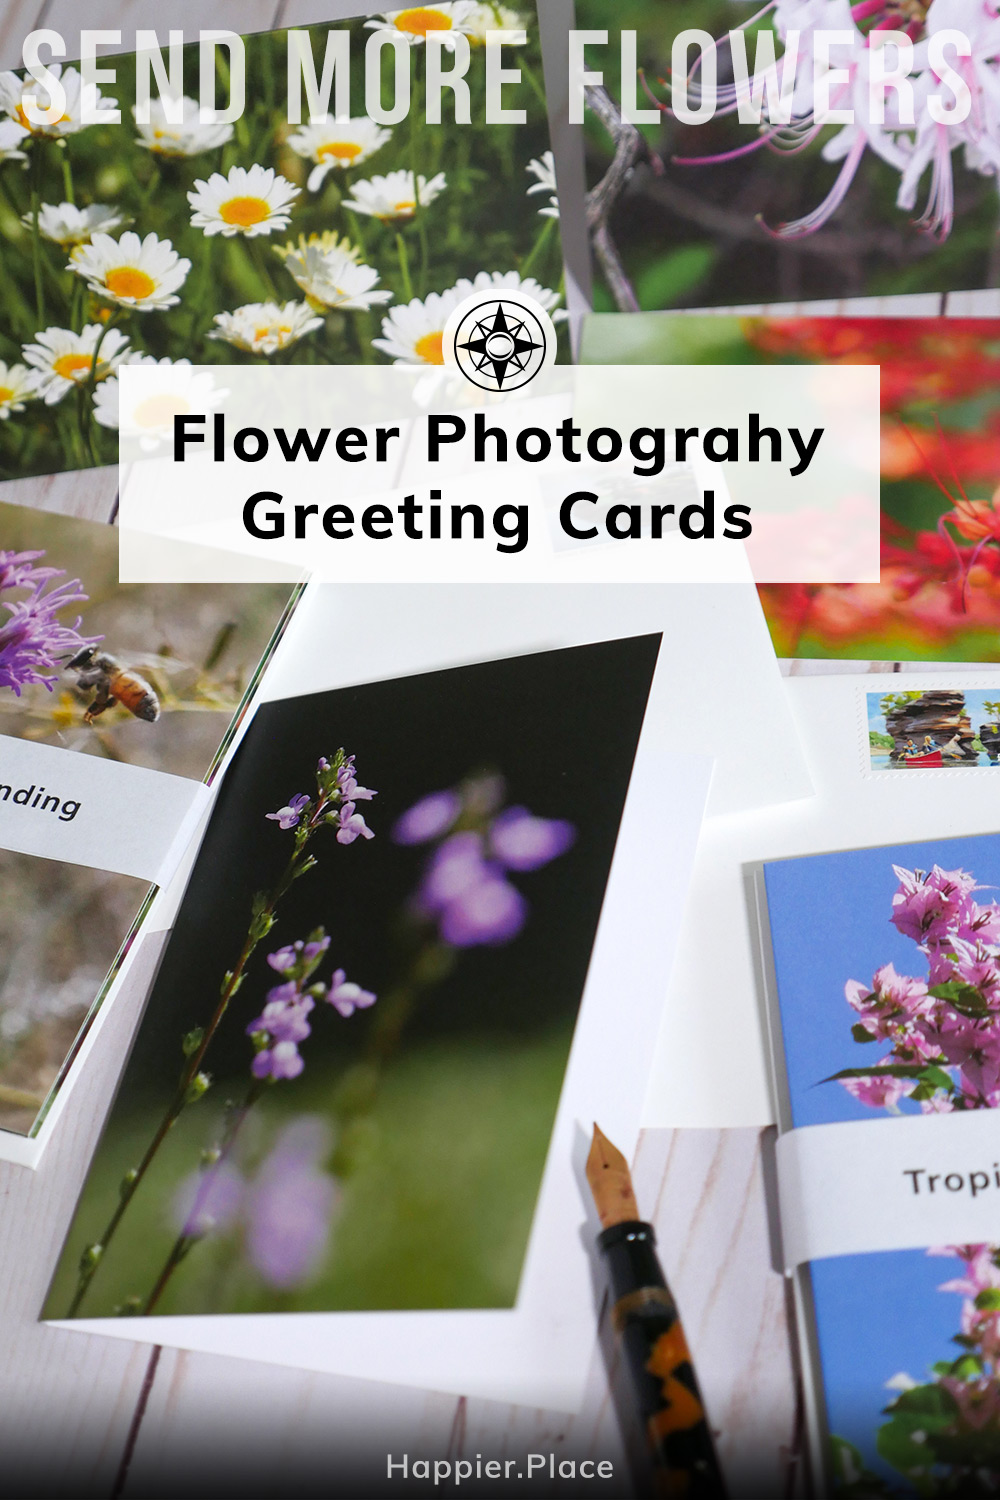 Send More Flowers: 2nd Edition Nature Photography Greeting Cards